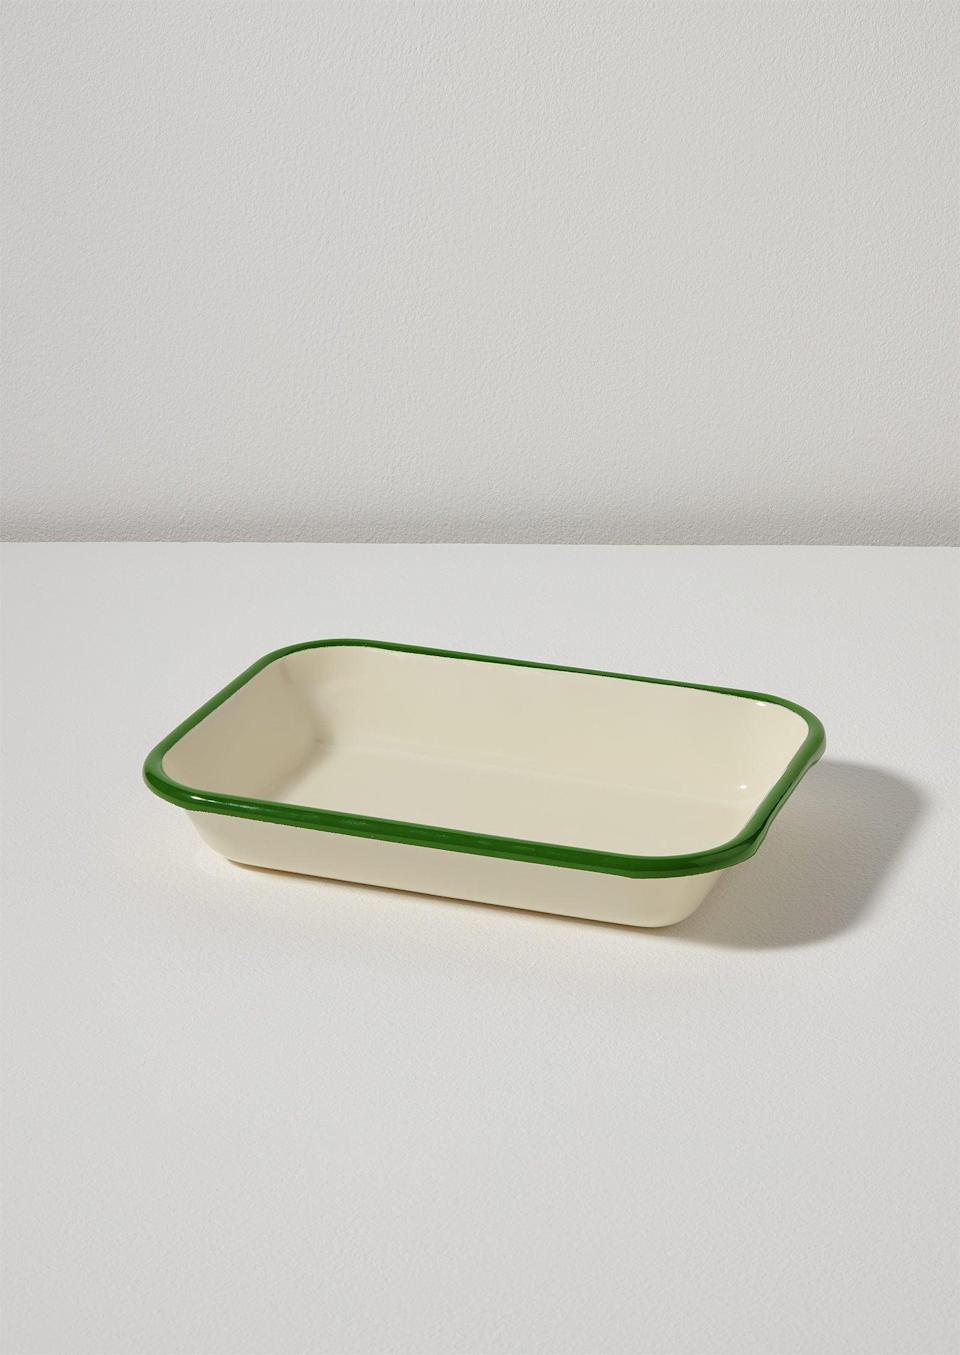 """<br><br><strong>Toast</strong> Medium Enamel Dish, $, available at <a href=""""https://www.toa.st/collections/homeware/products/medium-enamel-dish-cream-leaf"""" rel=""""nofollow noopener"""" target=""""_blank"""" data-ylk=""""slk:Toast"""" class=""""link rapid-noclick-resp"""">Toast</a>"""